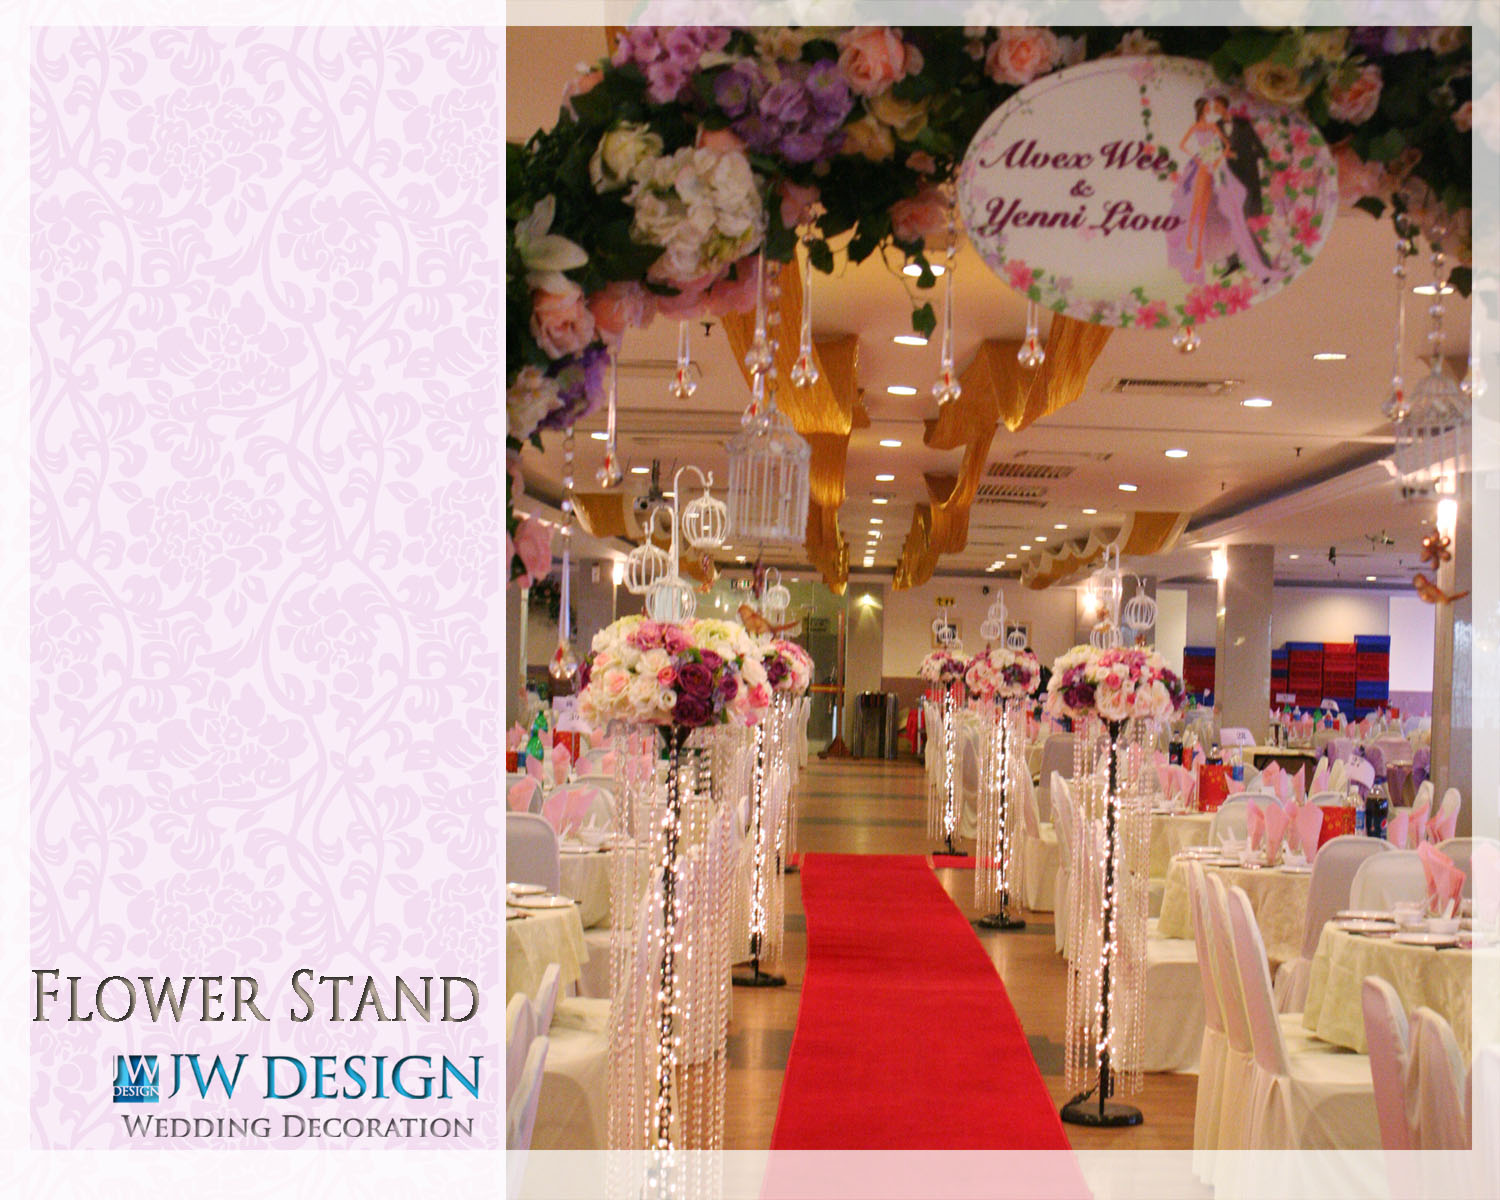 Wedding hall decoration klang jw design wedding decoration at wedding hall decoration klang wedding decoration at restaurant v garden klang junglespirit Gallery